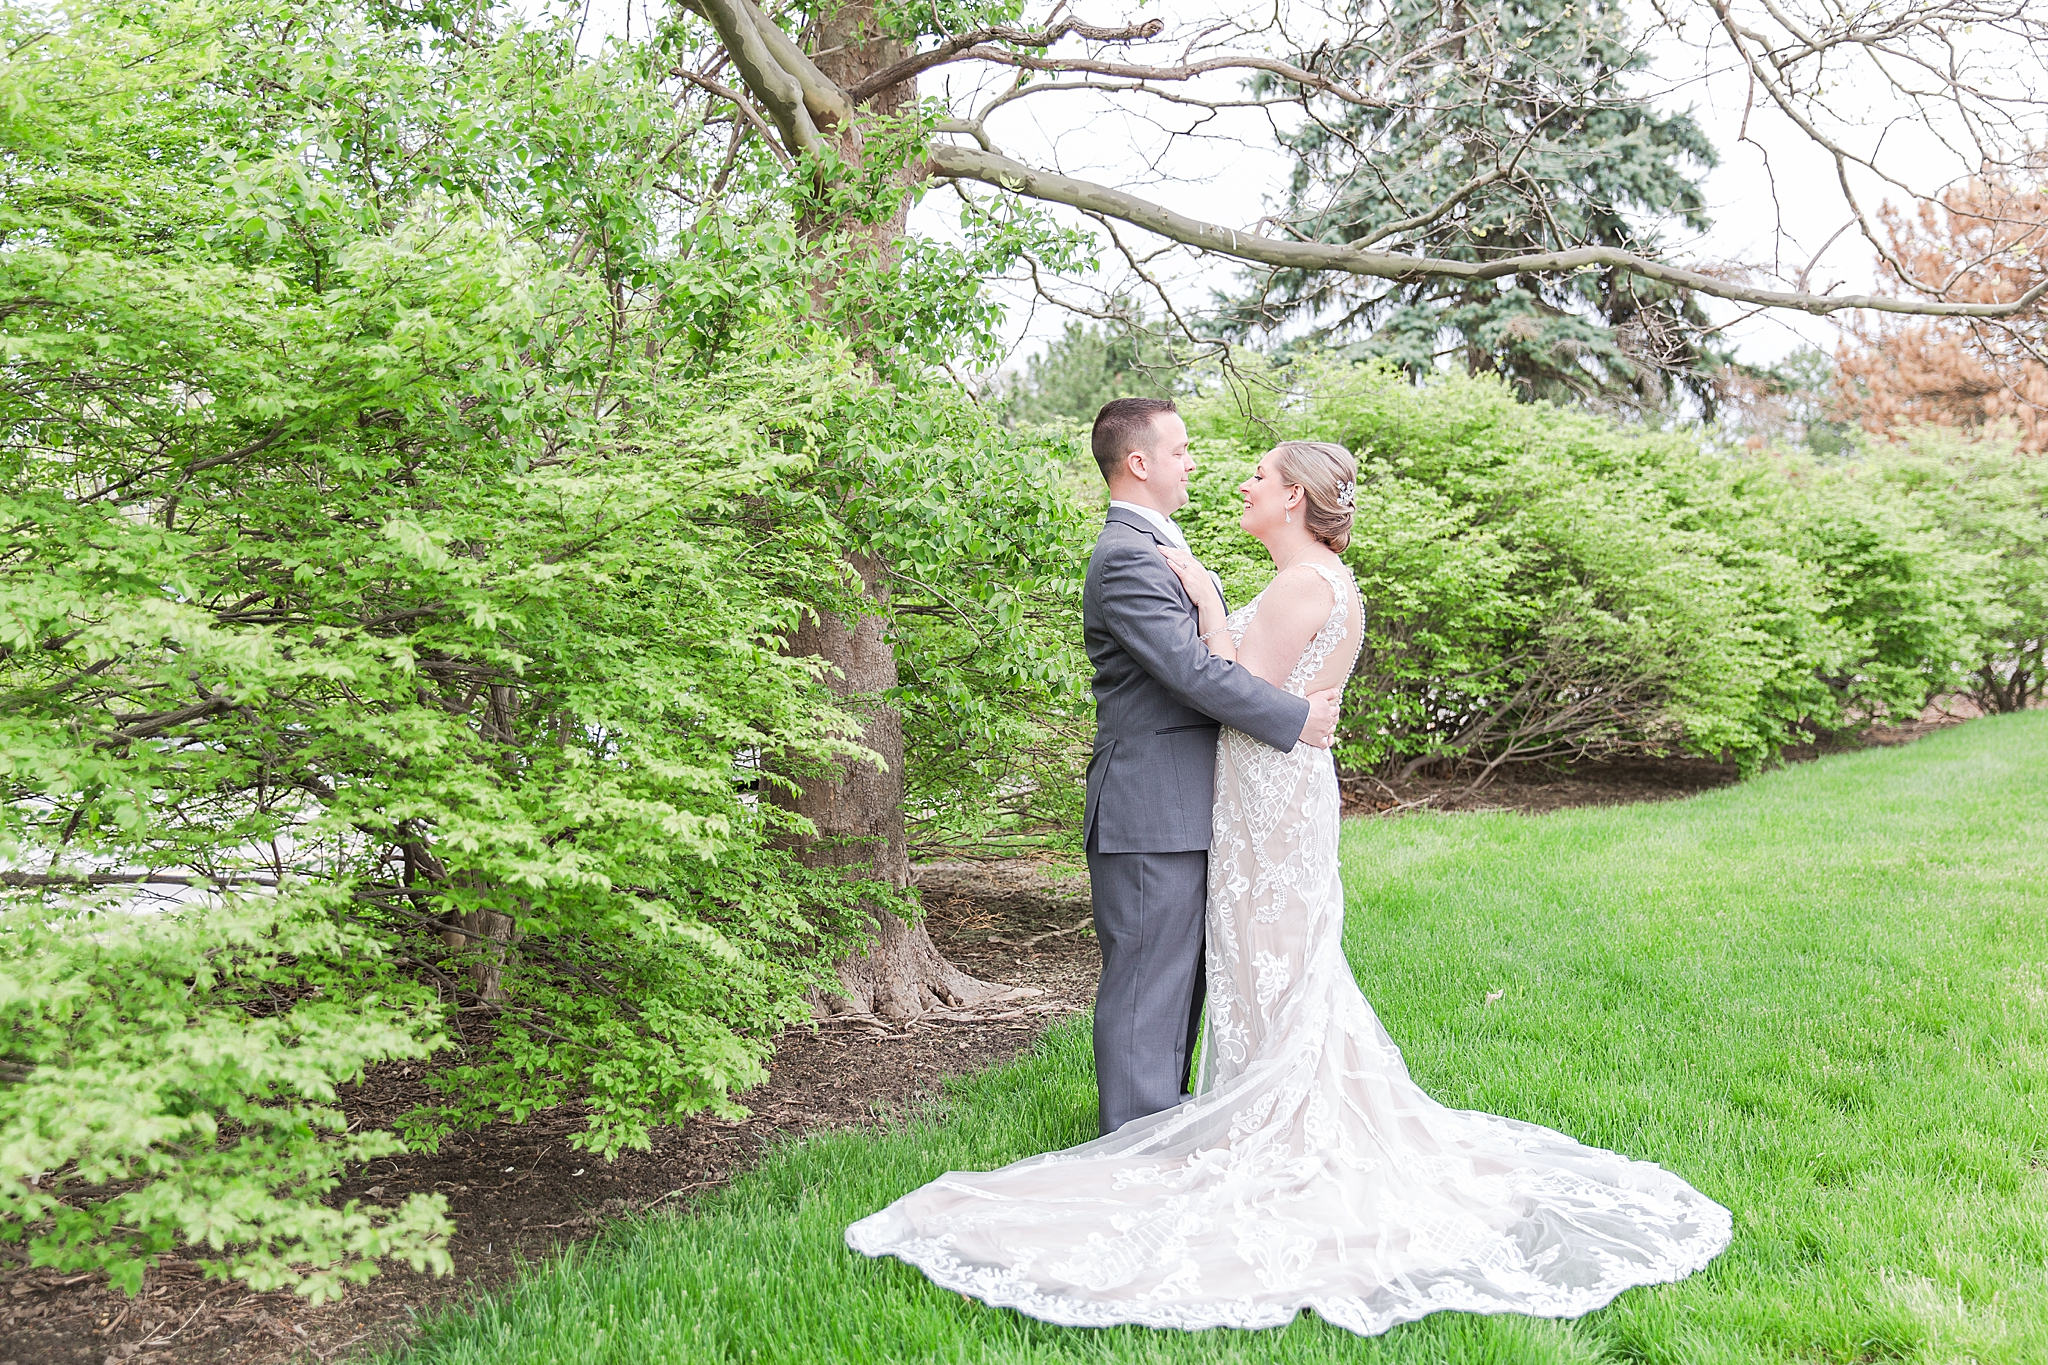 modern-romantic-wedding-photography-at-webers-in-ann-arbor-michigan-by-courtney-carolyn-photography_0049.jpg